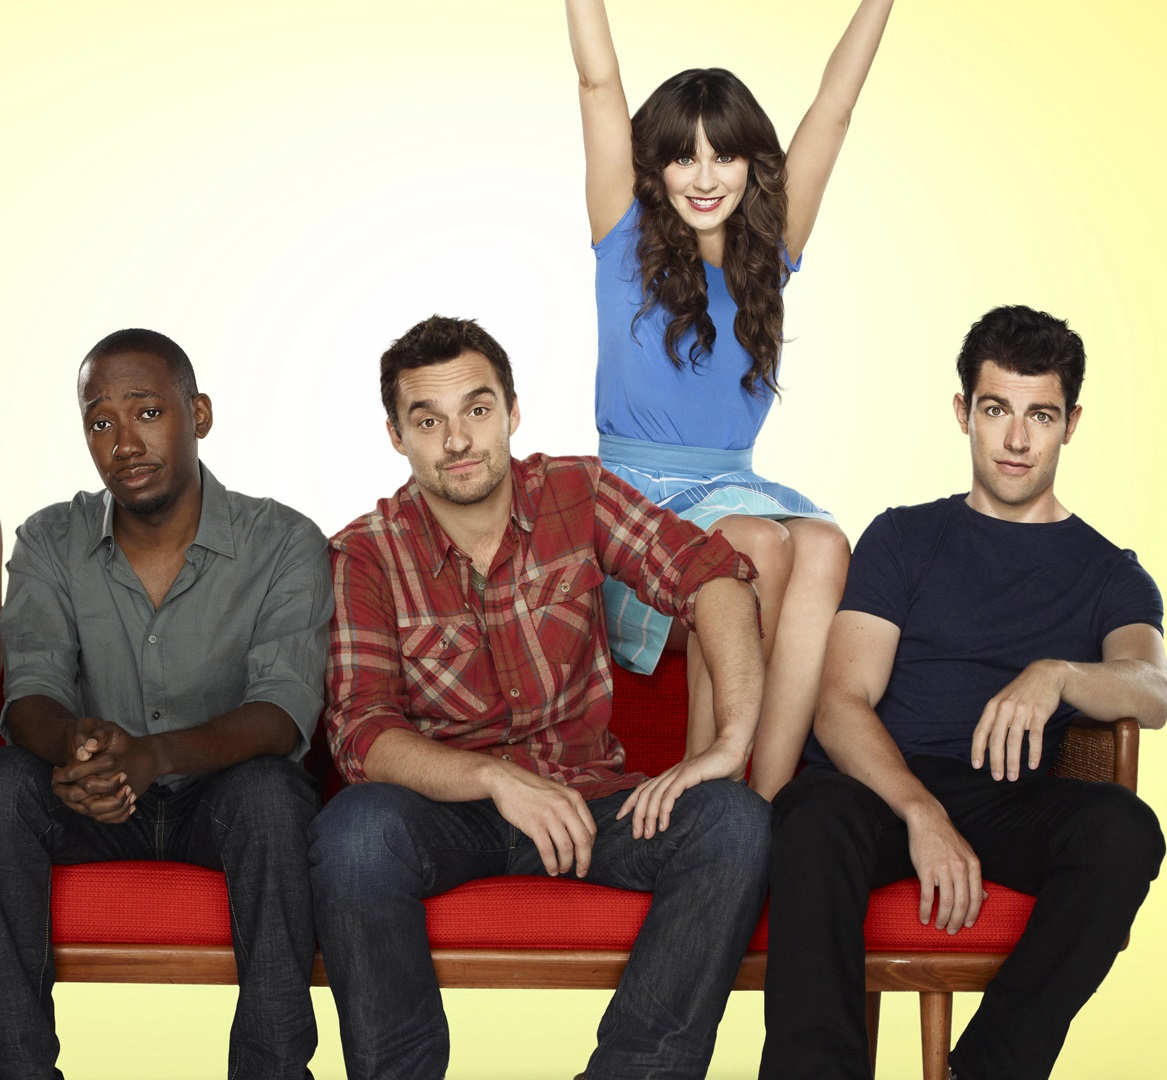 NEW GIRL: The new comedy starring Zooey Deschanel as an adorkable girl who moves in with three single guys, changing their lives in unexpected ways, premieres Tuesday, Sept. 20 (9:00-9:30 PM ET/PT) on FOX. (Pictured L-R: Hannah Simone, Lamorne Morris, Jake Johnson, Zooey Deschanel and Max Greenfield). ©2011 Fox Broadcasting Co. Cr: Autumn DeWilde/FOX